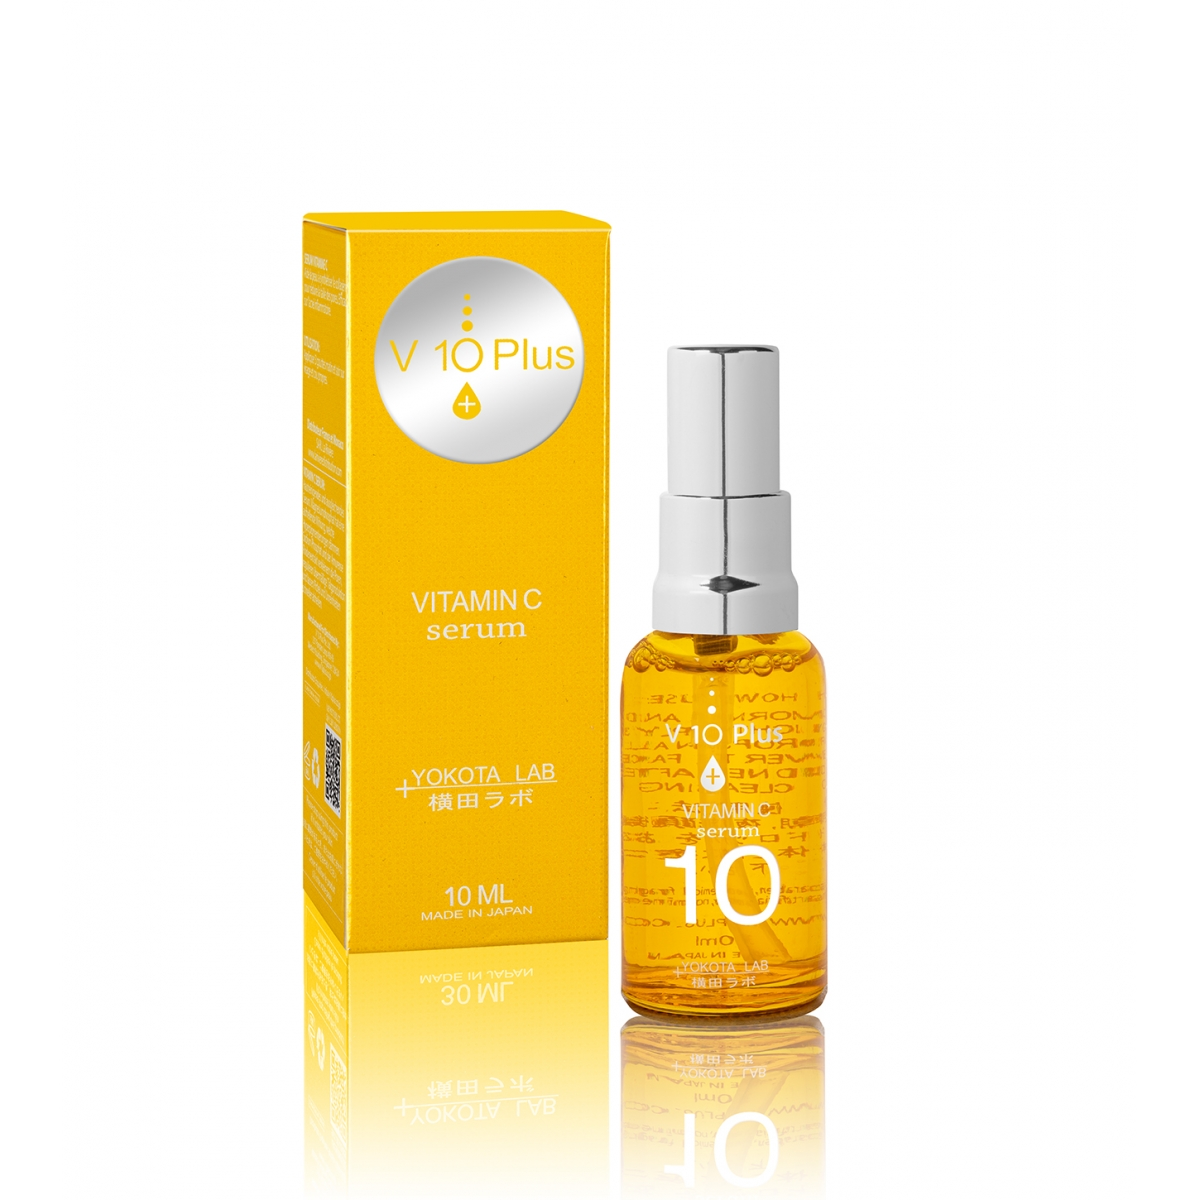 SOIN DU VISAGE - VITAMINE C SERUM V10+ (30 ml)